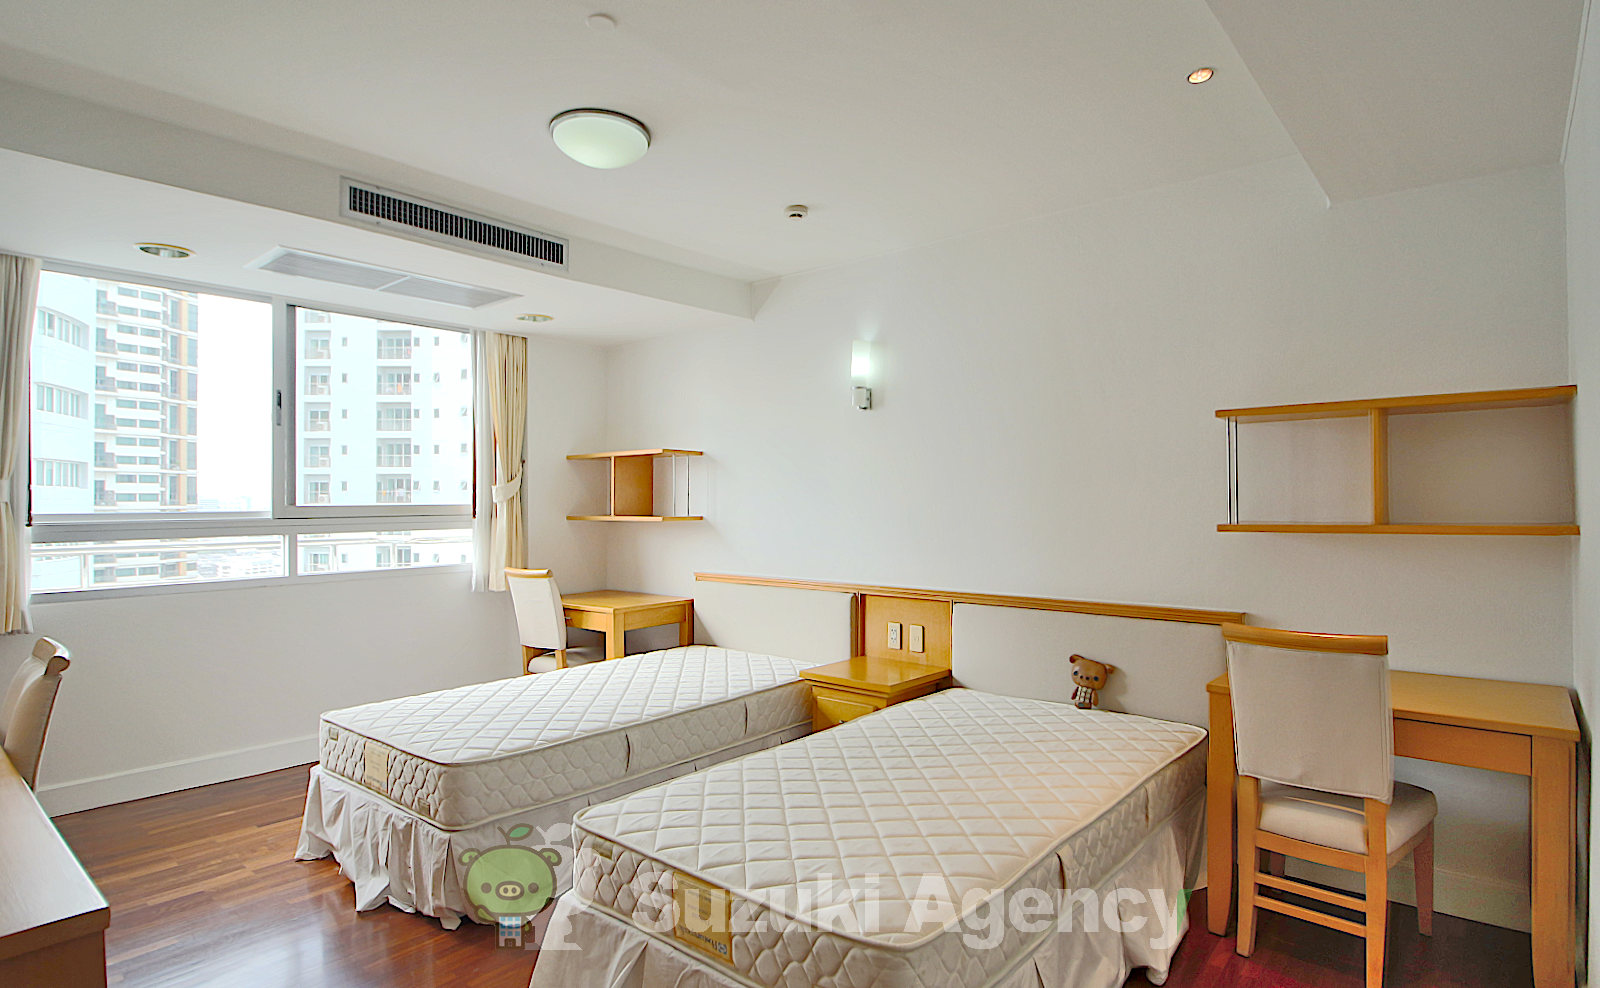 Krungthep Thani Tower:2Bed Room Photos No.9